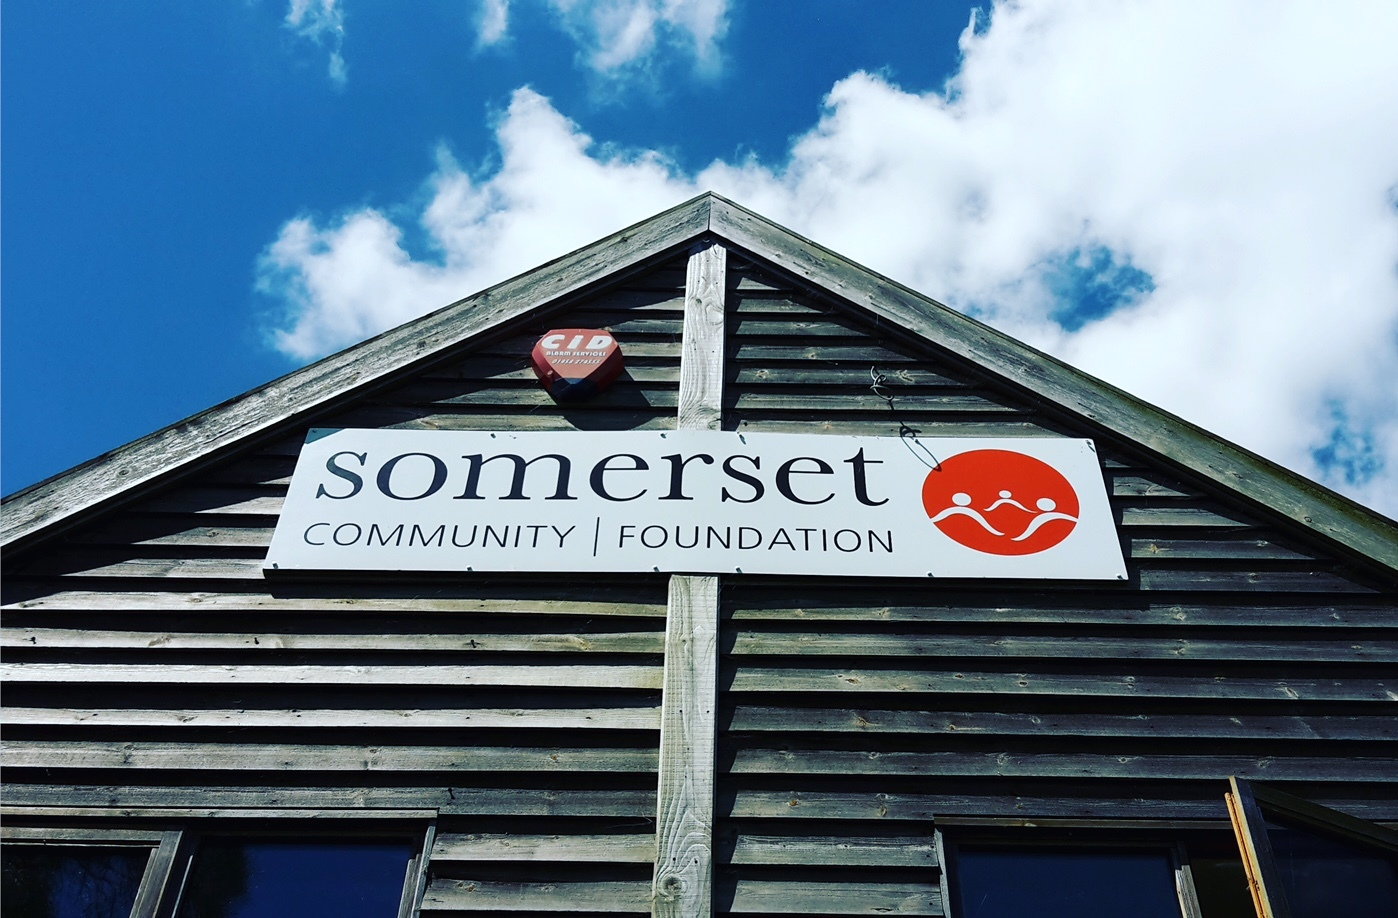 Laying the foundations to make a difference in Somerset